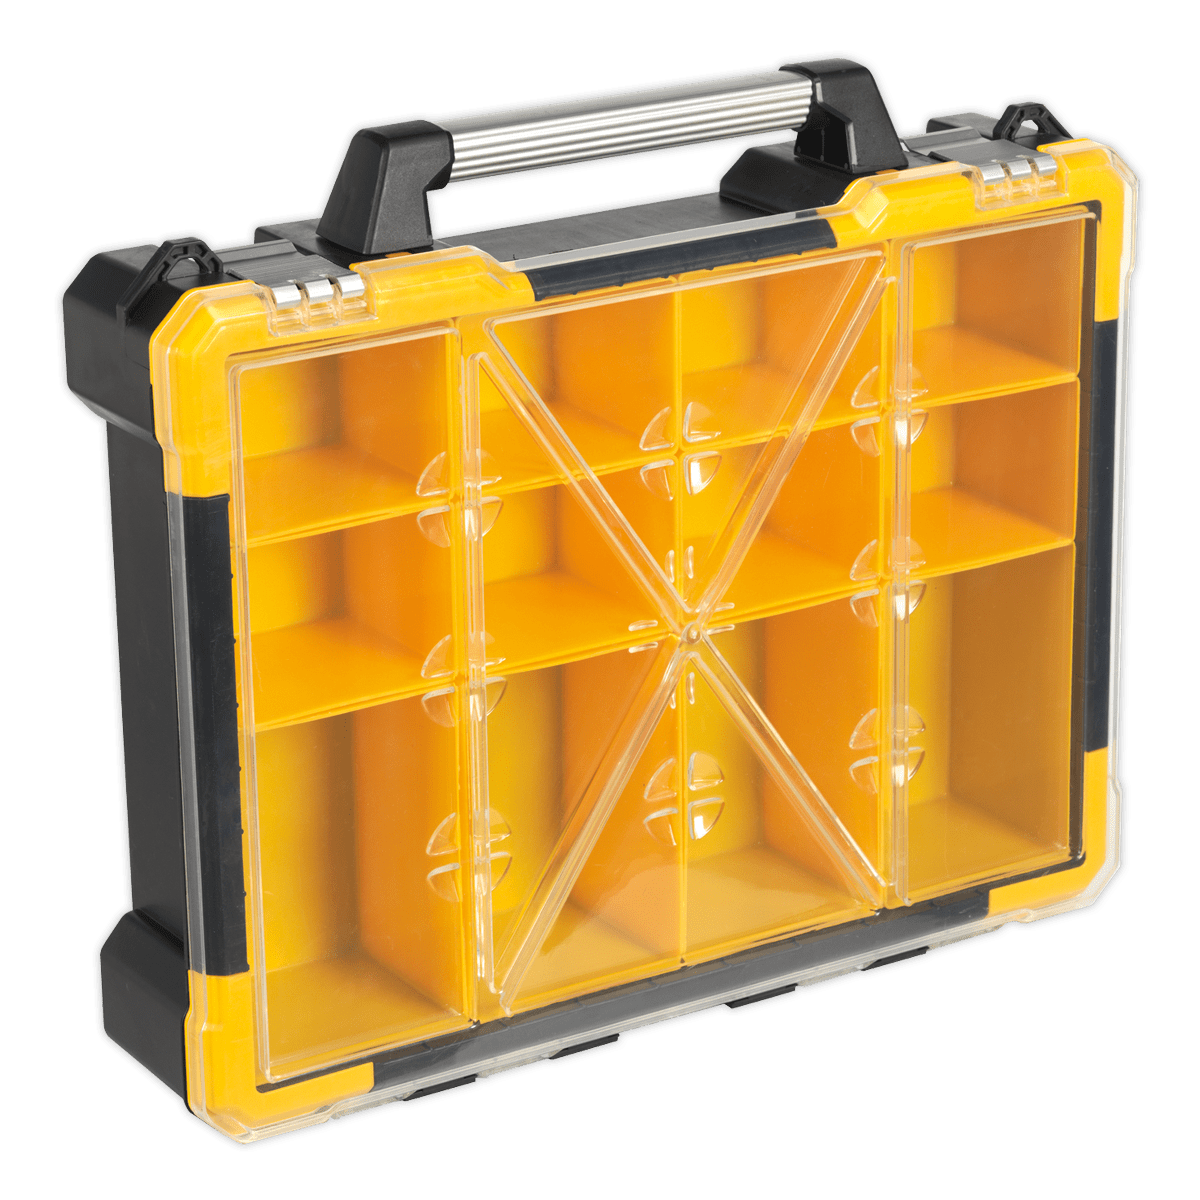 Sealey Parts Storage Case with 12 Removable Compartments APAS12R